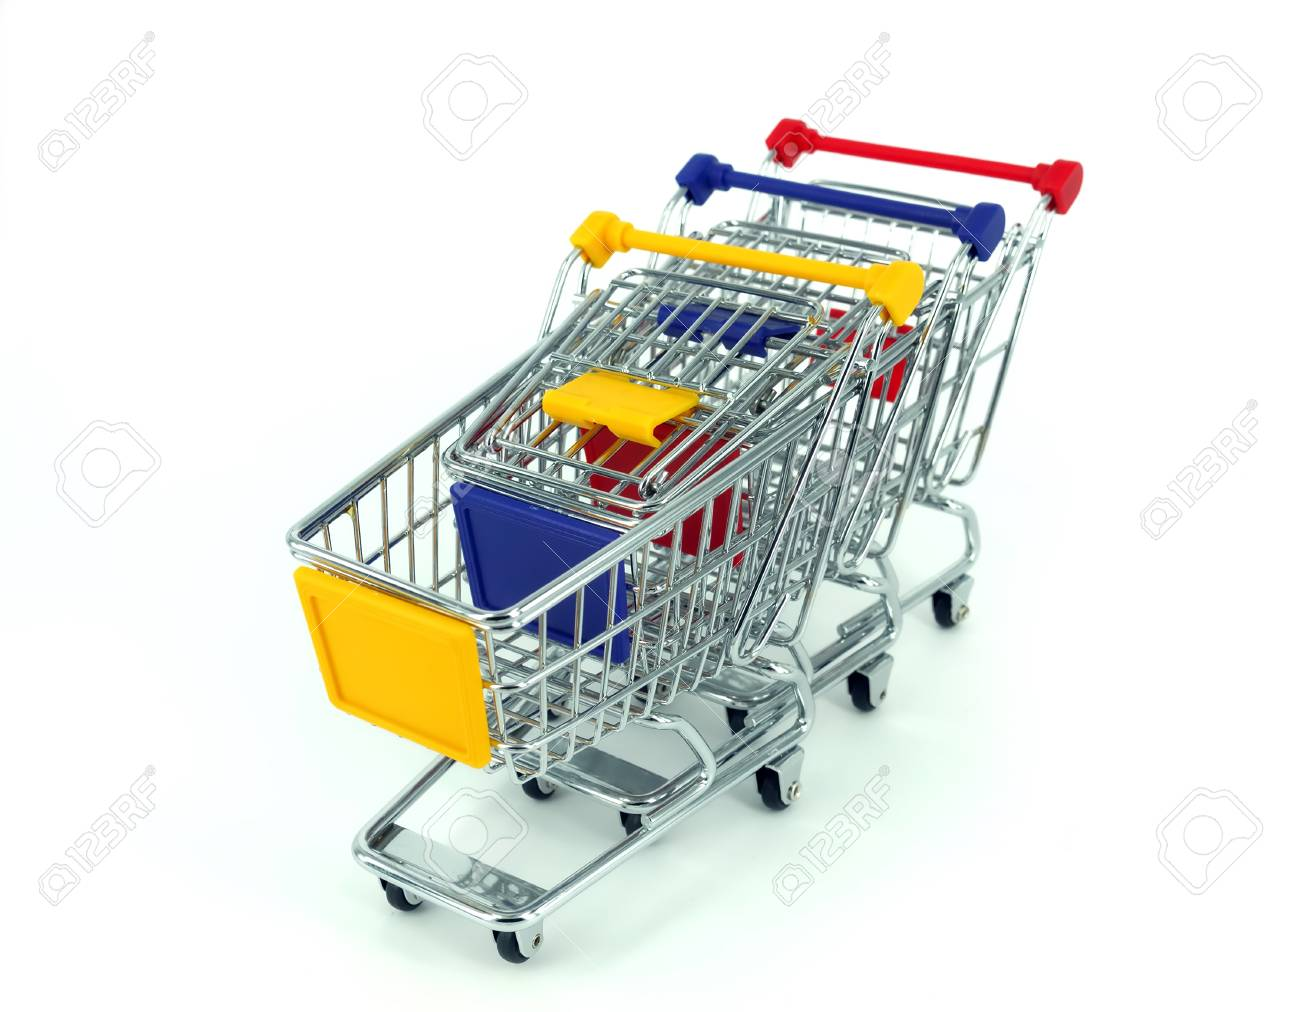 shopping cart over white background Stock Photo - 11519290